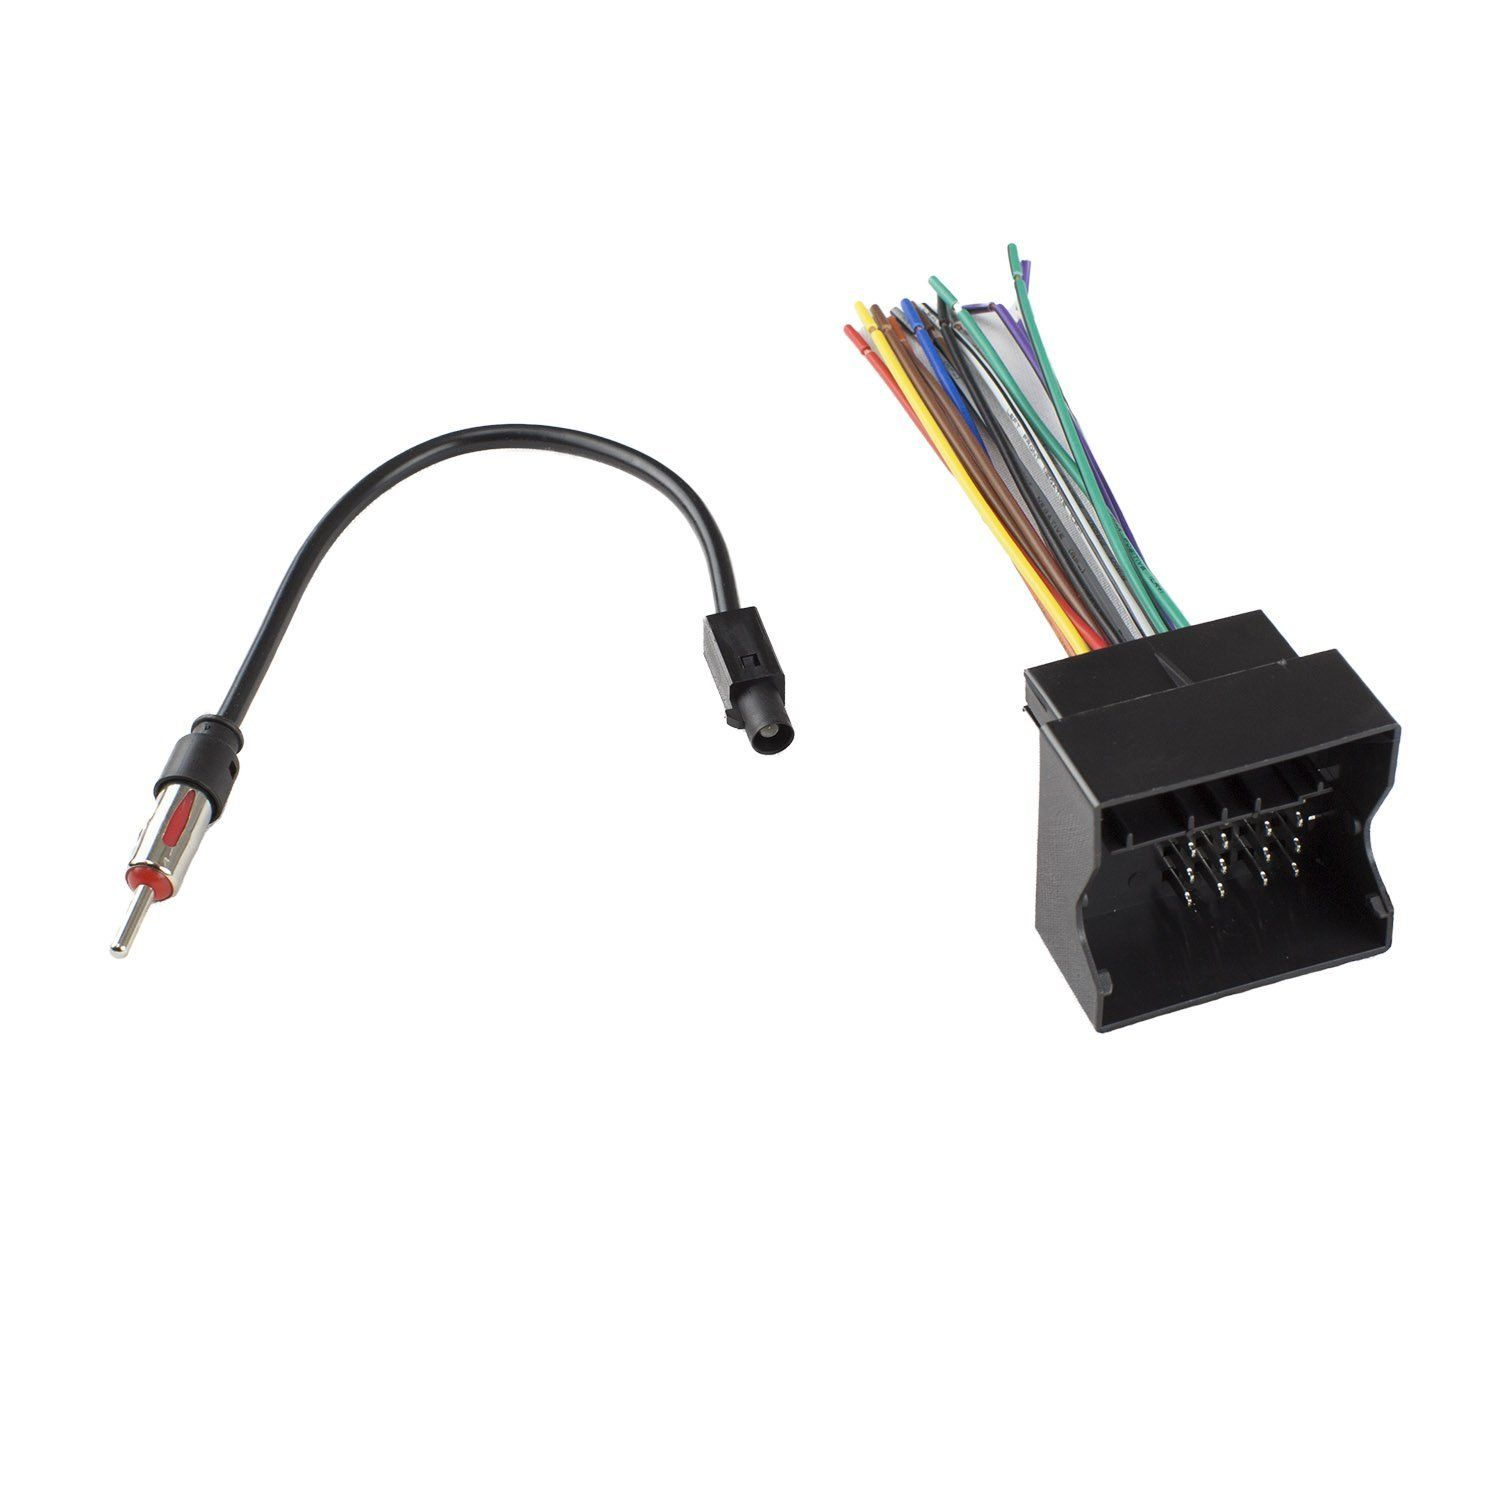 novosonics vwf 1010 vw7 wiring harness for mini cooper package includes vwf 1010 wire harness vw 7 radio antenna adapter connect an aftermarket stereo to  [ 1500 x 1500 Pixel ]